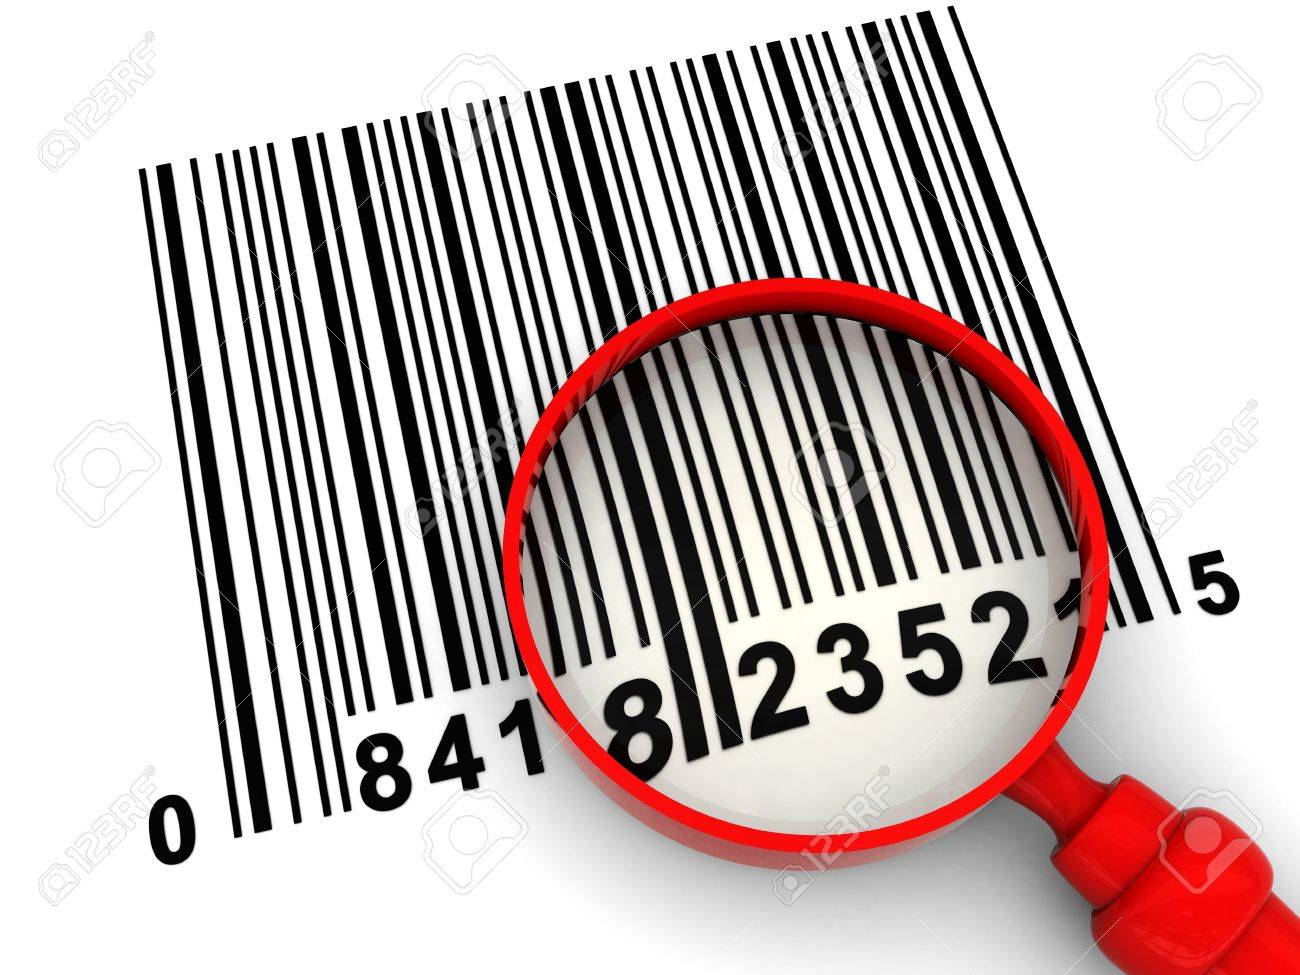 3d illustration of barcode scanning, with magnify glass Stock Photo - 4775161